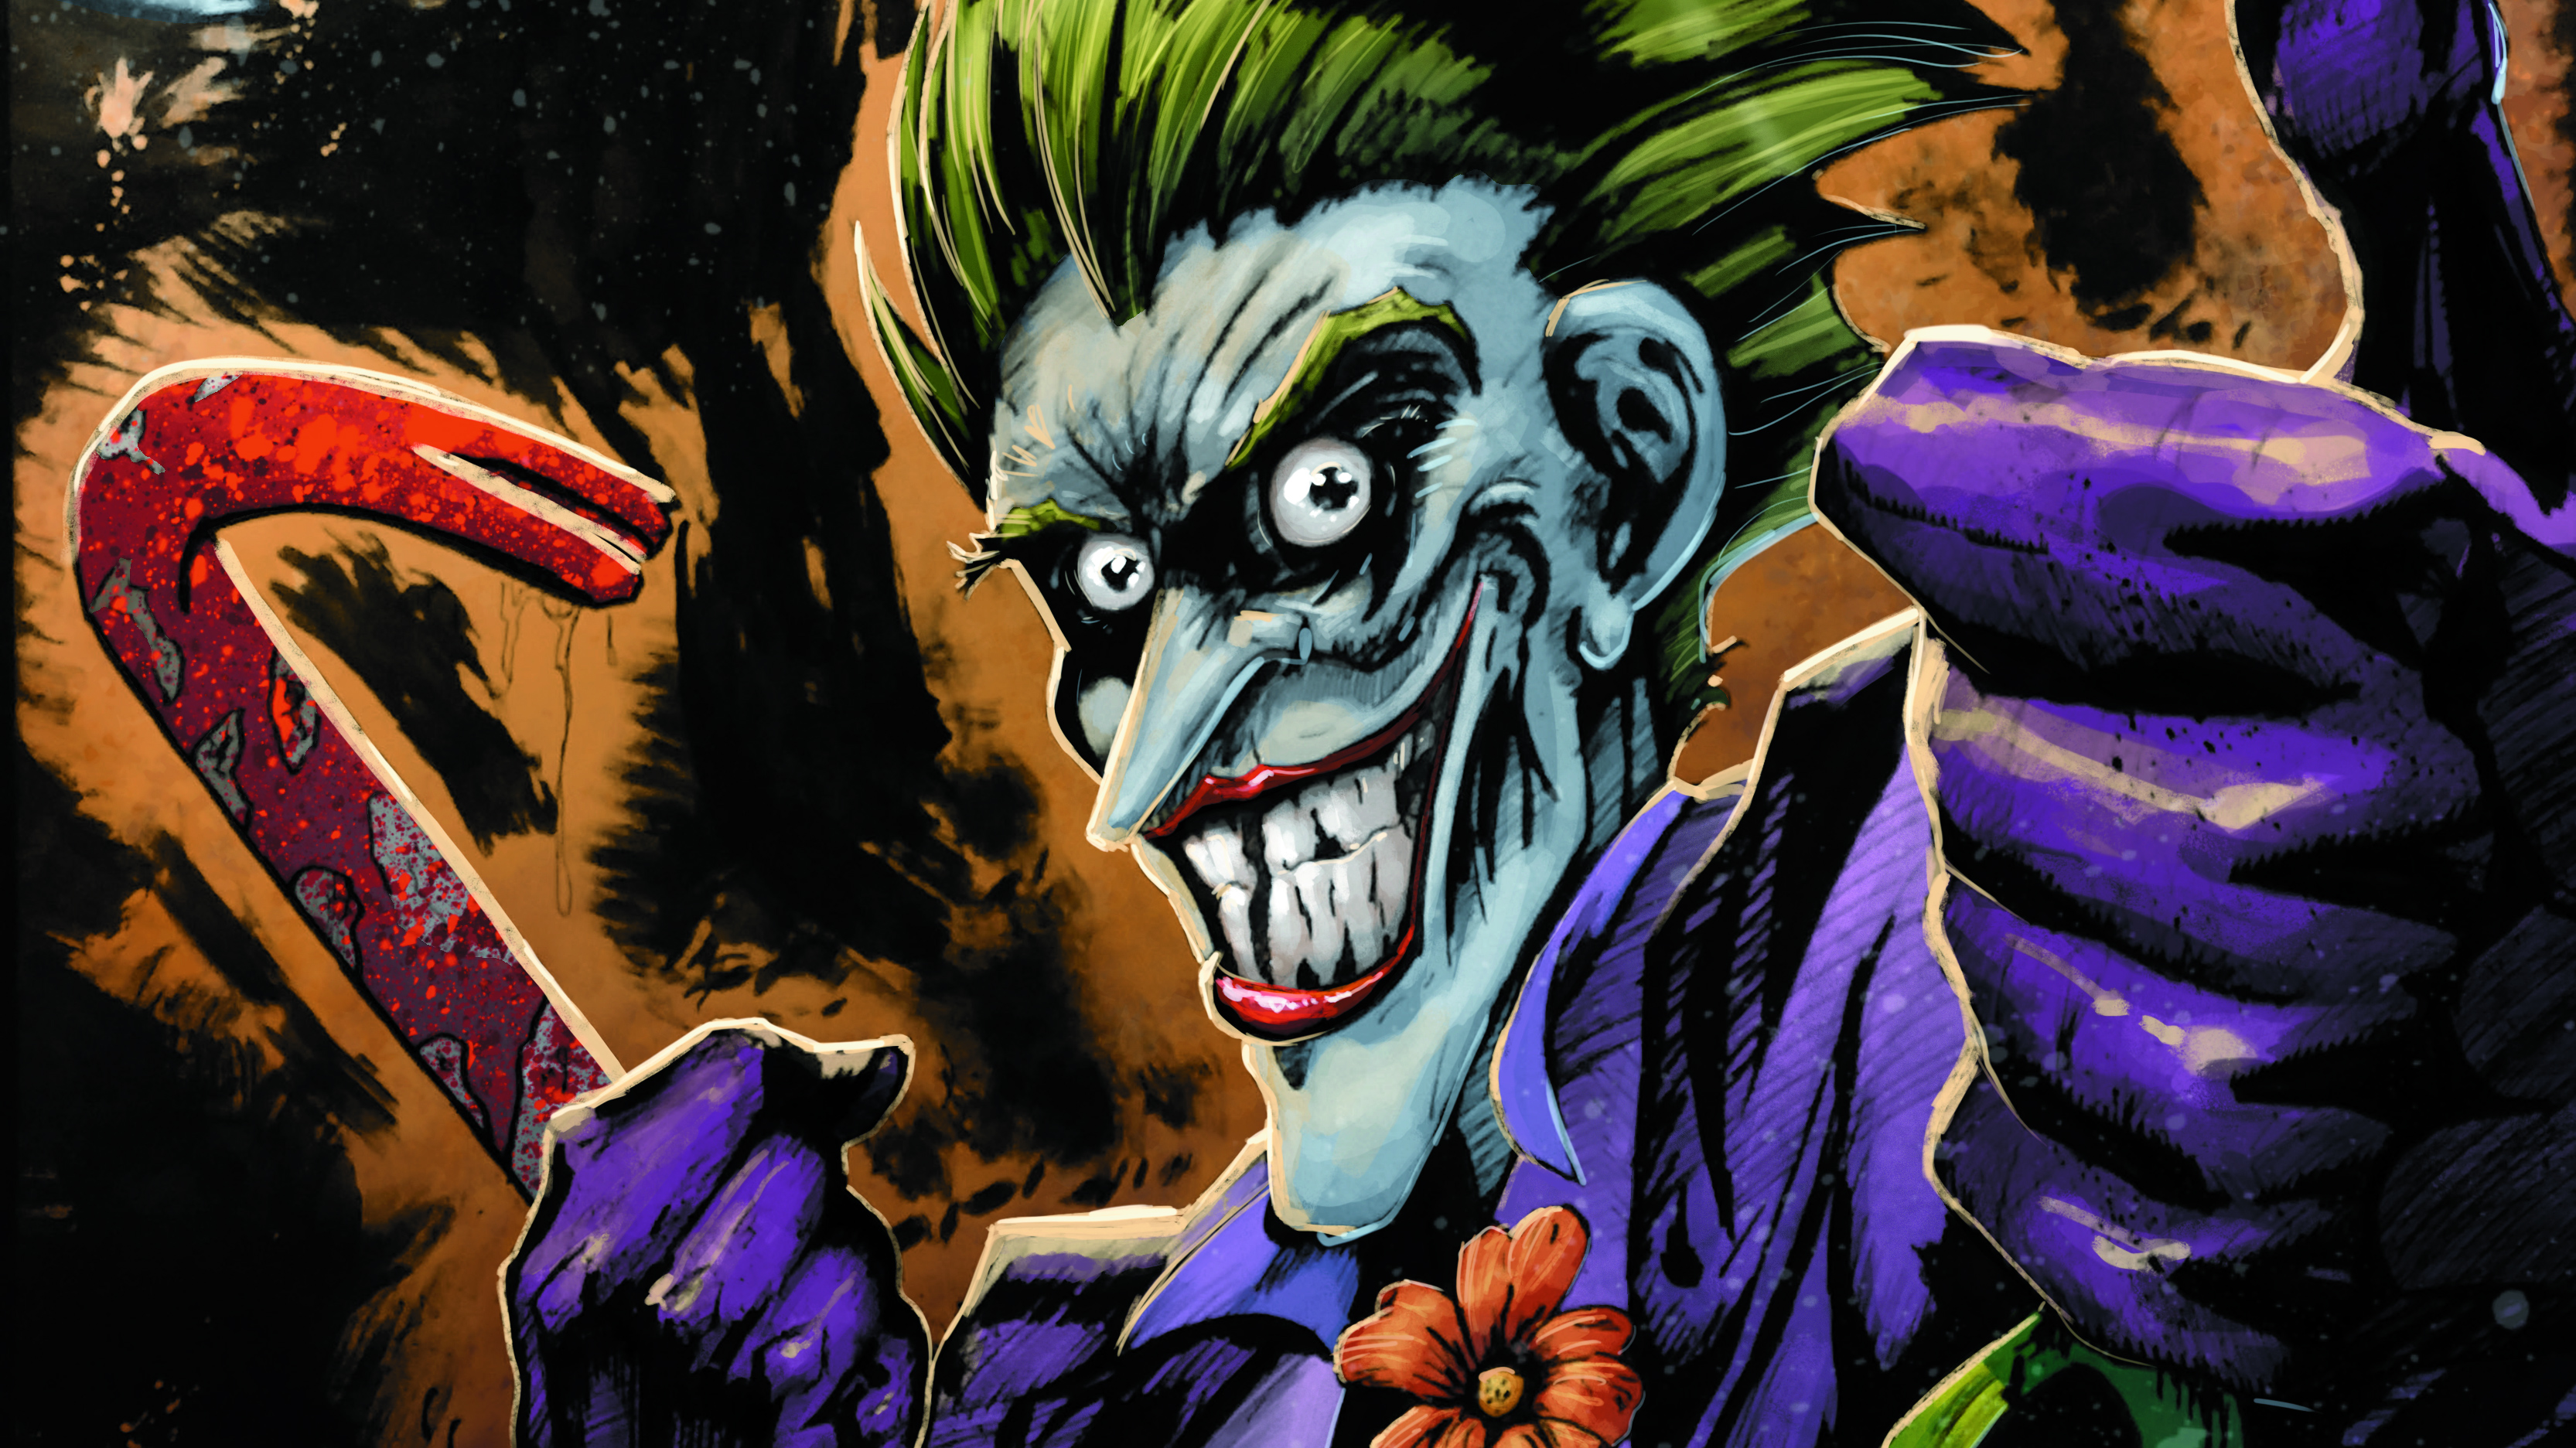 2560x1080 Joker Color Art 4k 2560x1080 Resolution HD 4k ...